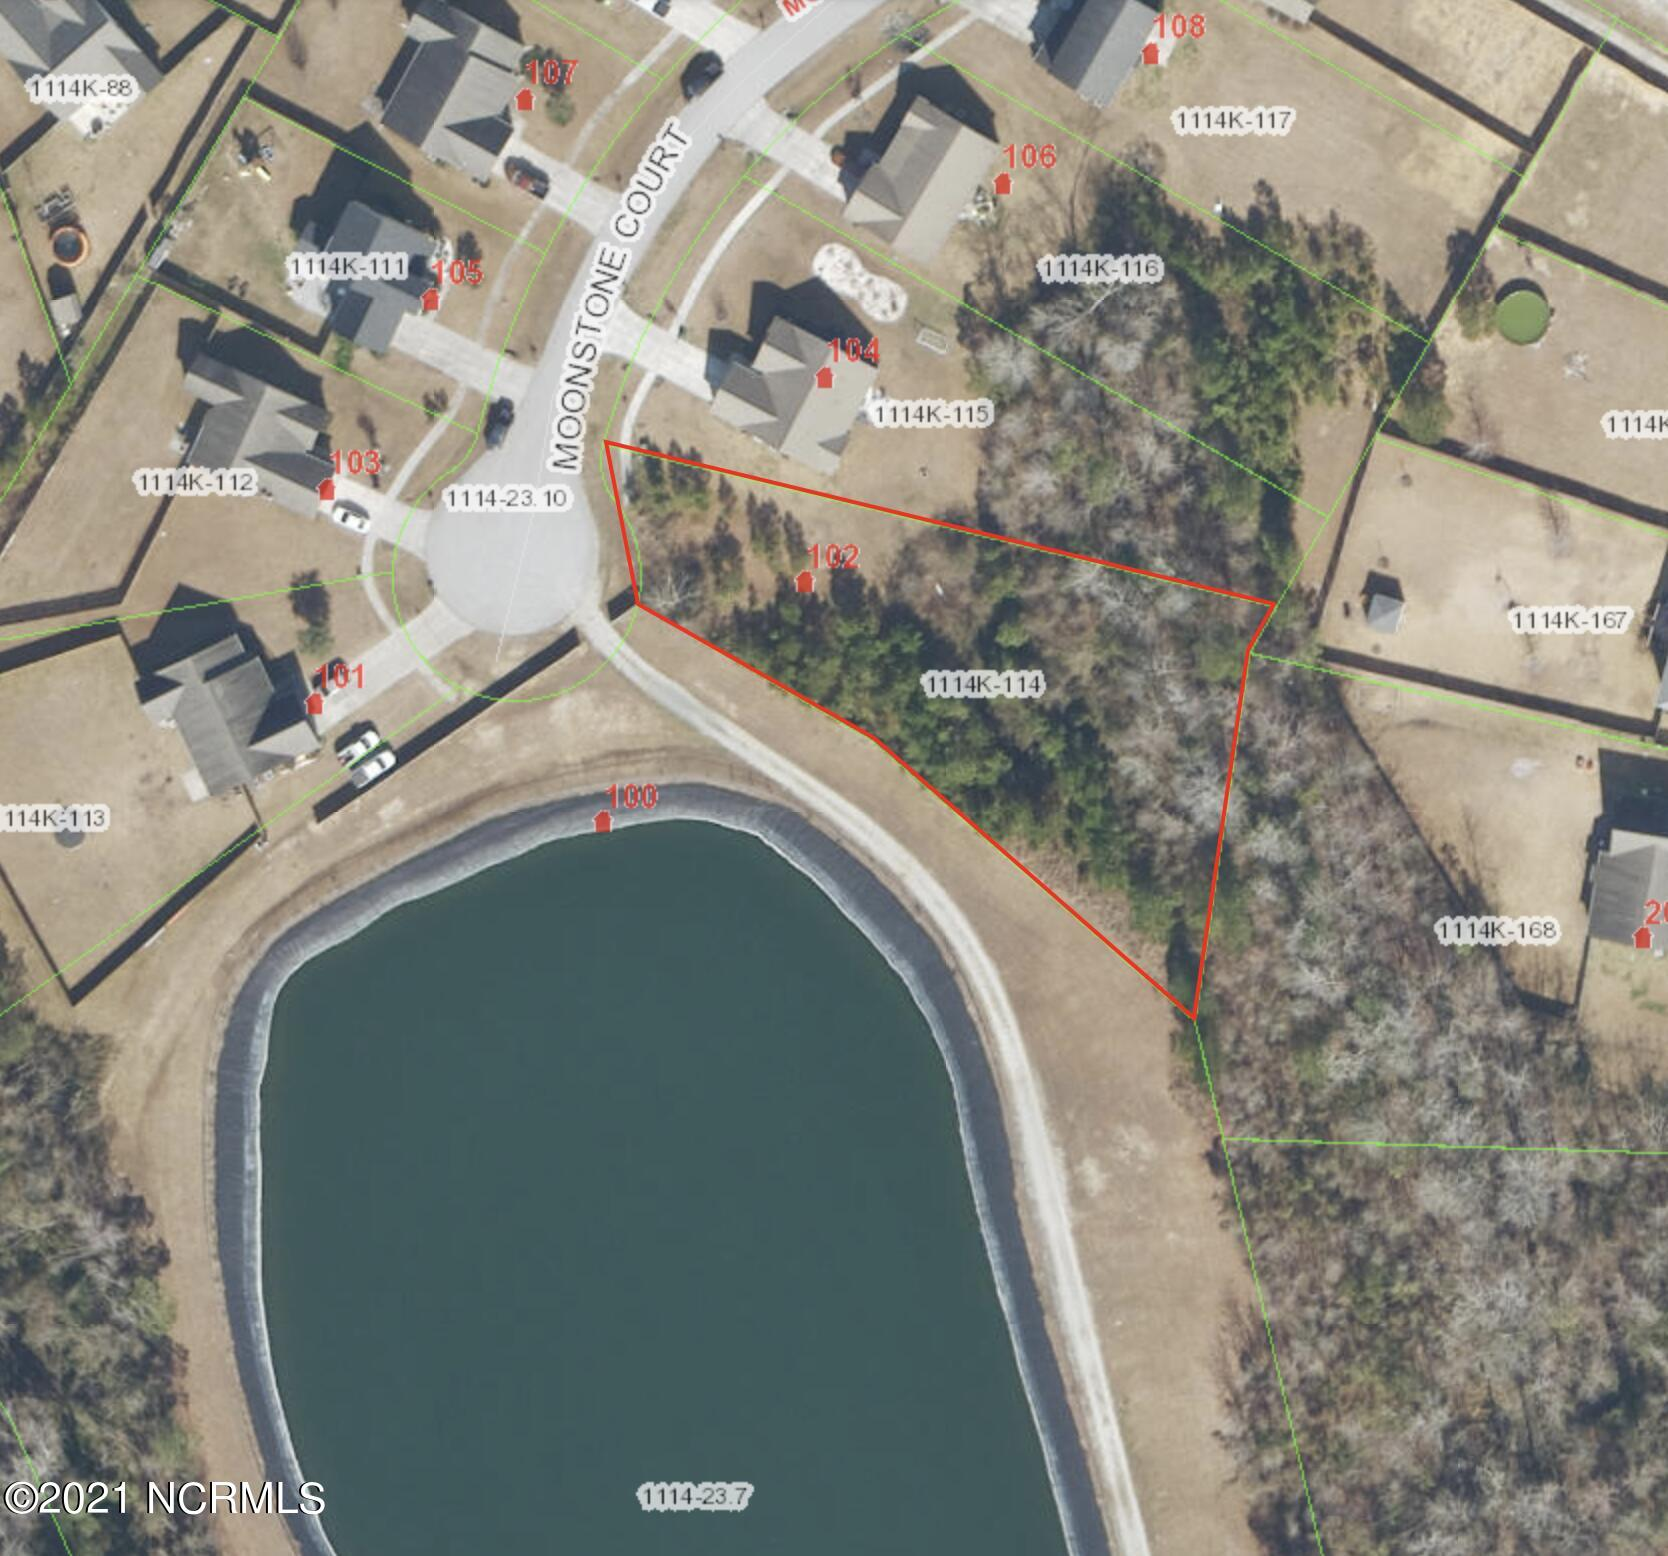 .62 Acre lot available in the established neighborhood of Sterling Farms! Whether you want to build right away or hold onto this lot to build in the future, this is the perfect time to snag yourself a piece of the beautiful community!